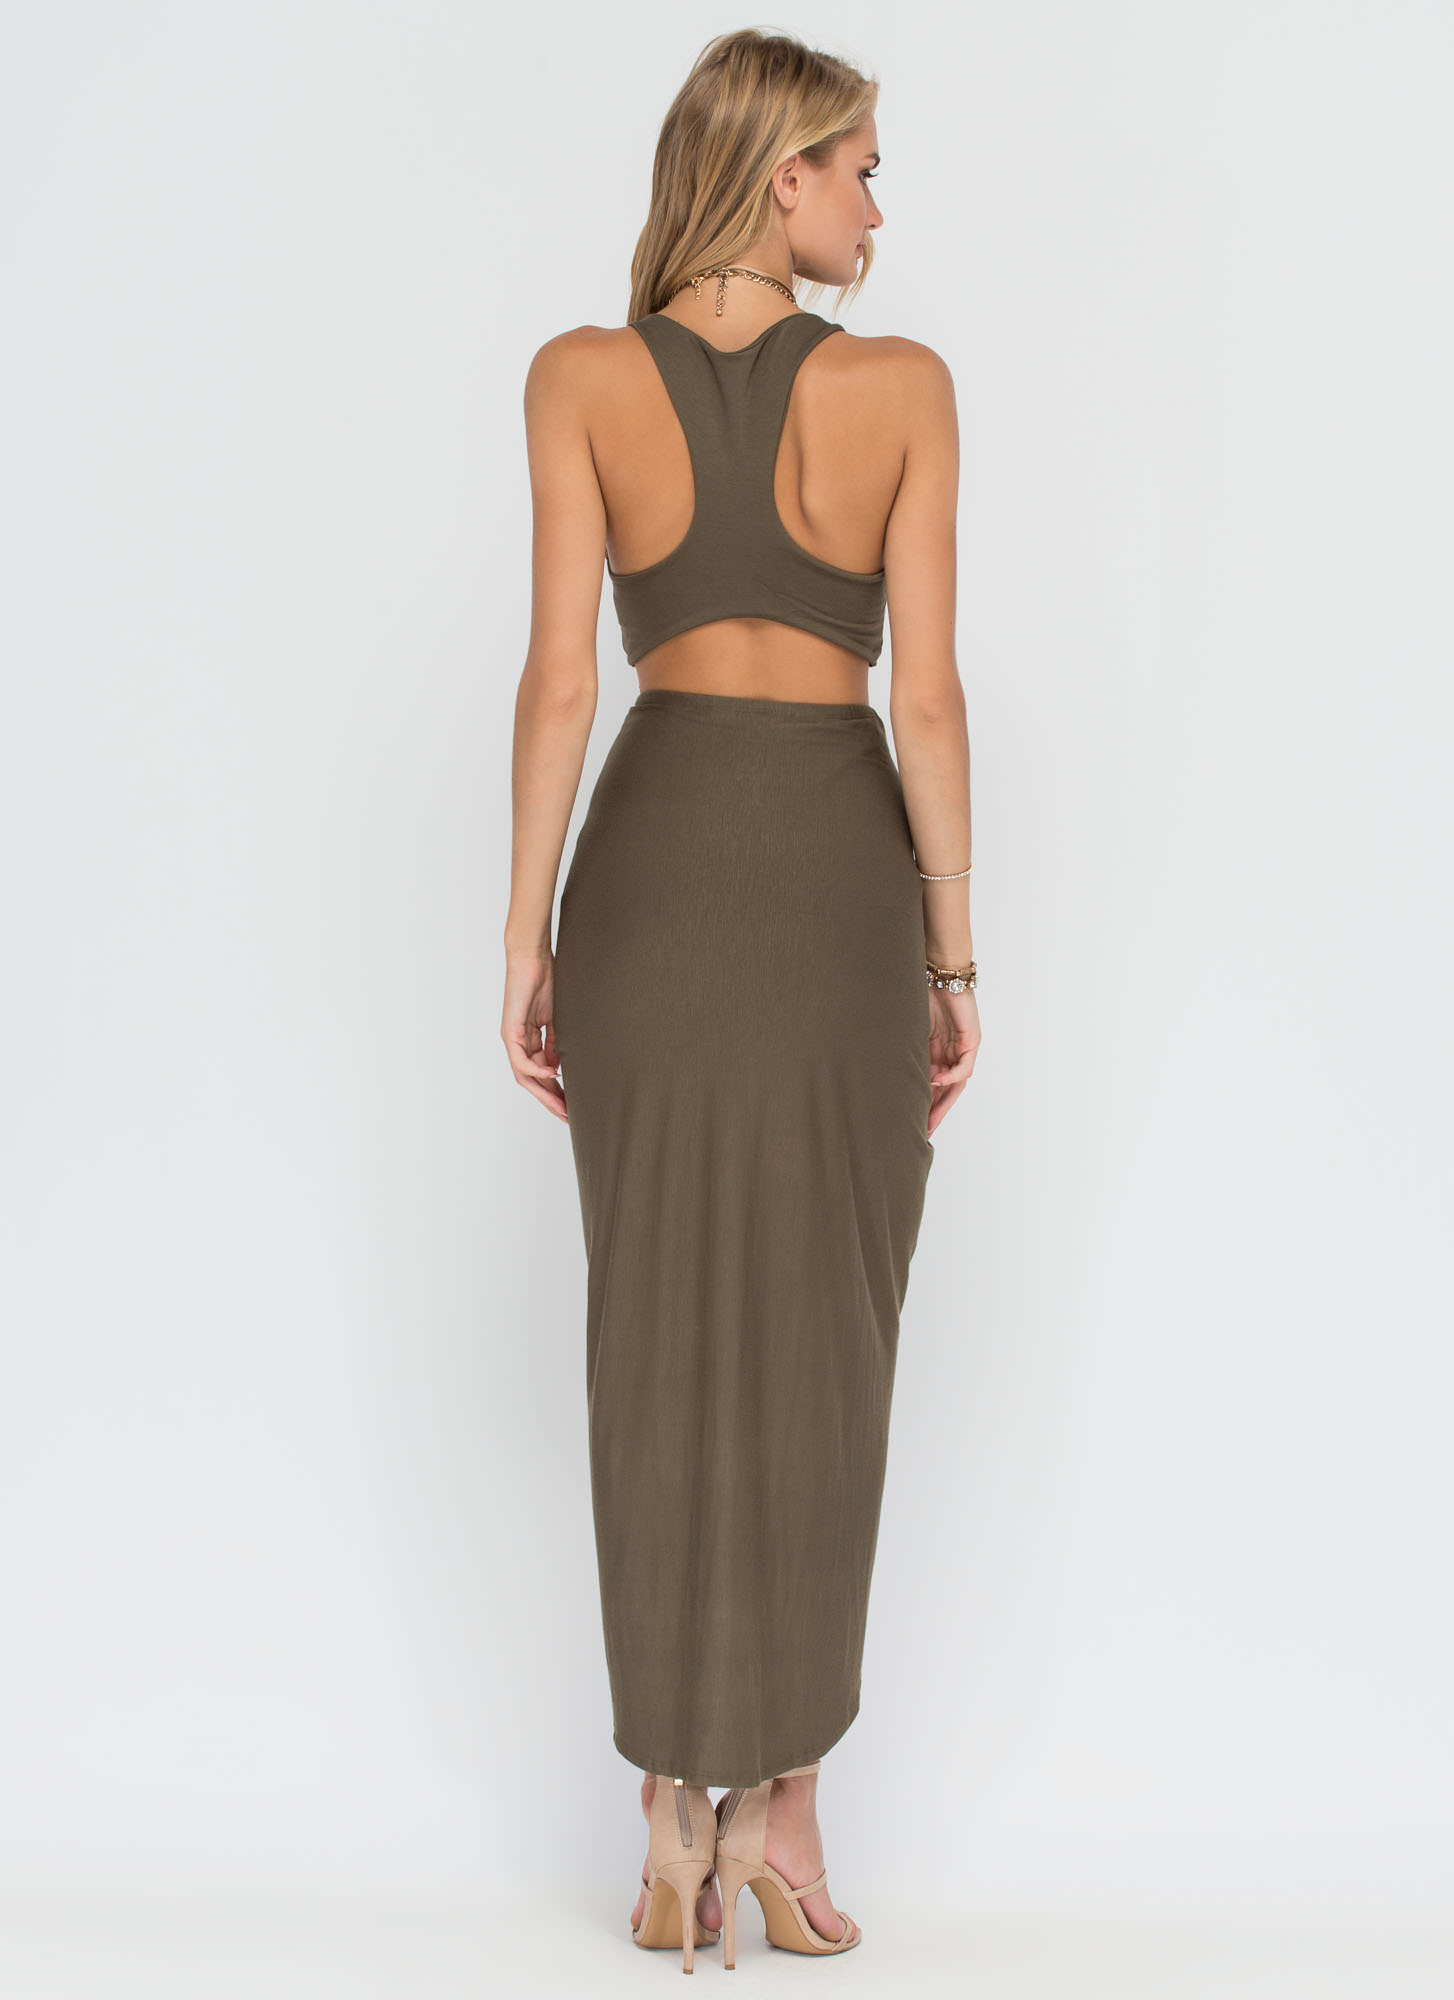 It Takes Two Draped Top 'N Skirt Set OLIVE